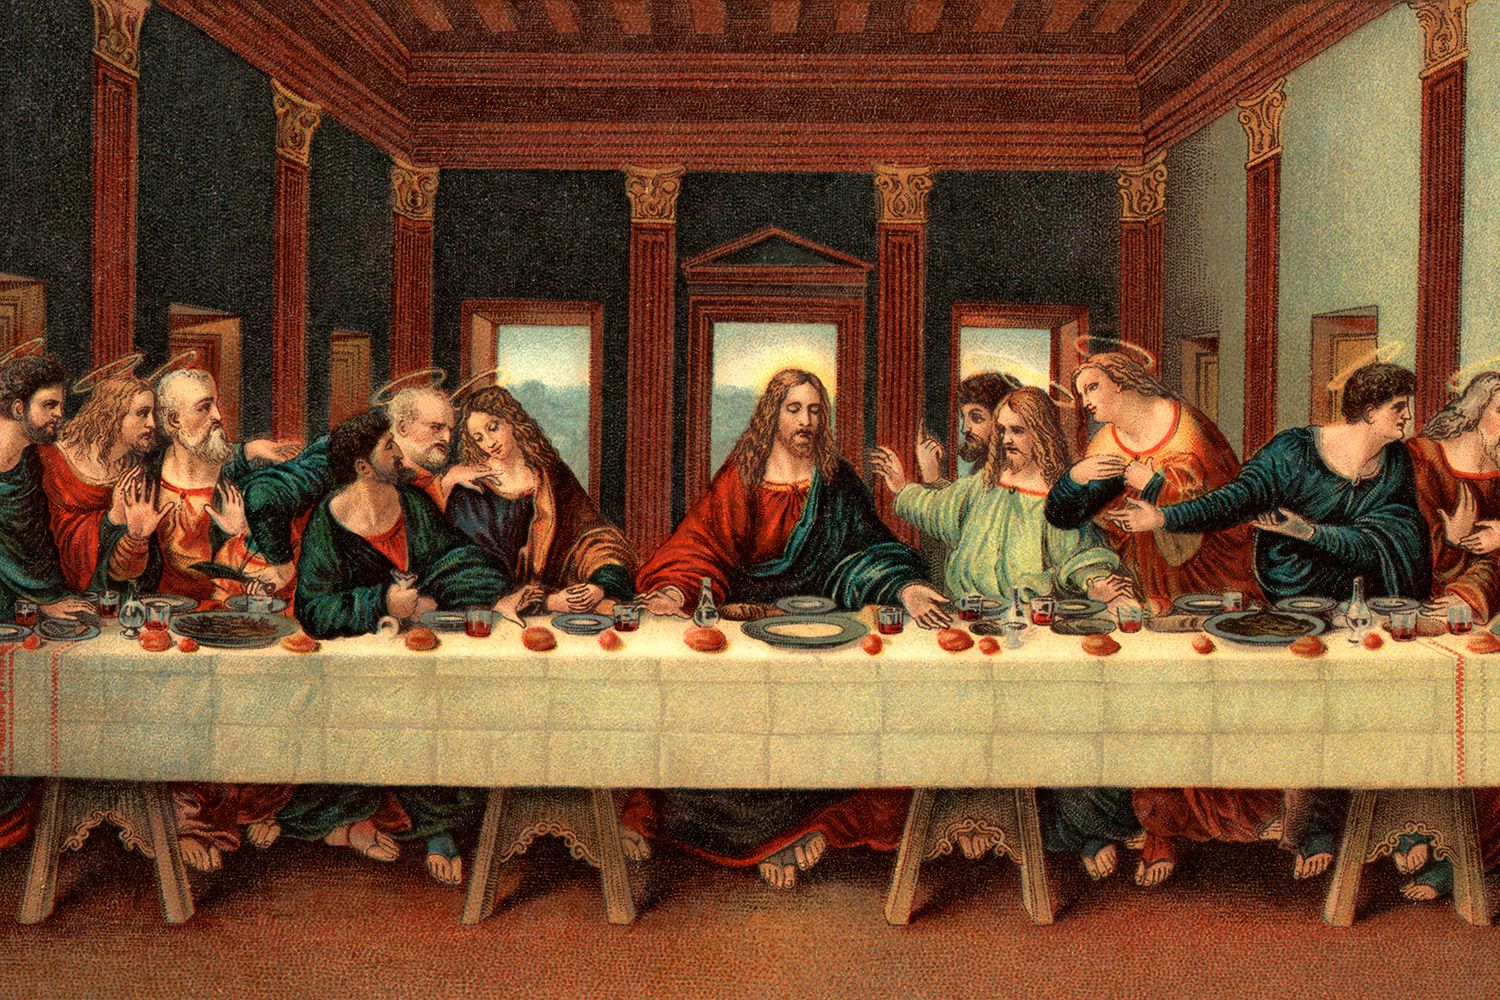 The Last Supper in the Bible: A Study Guide